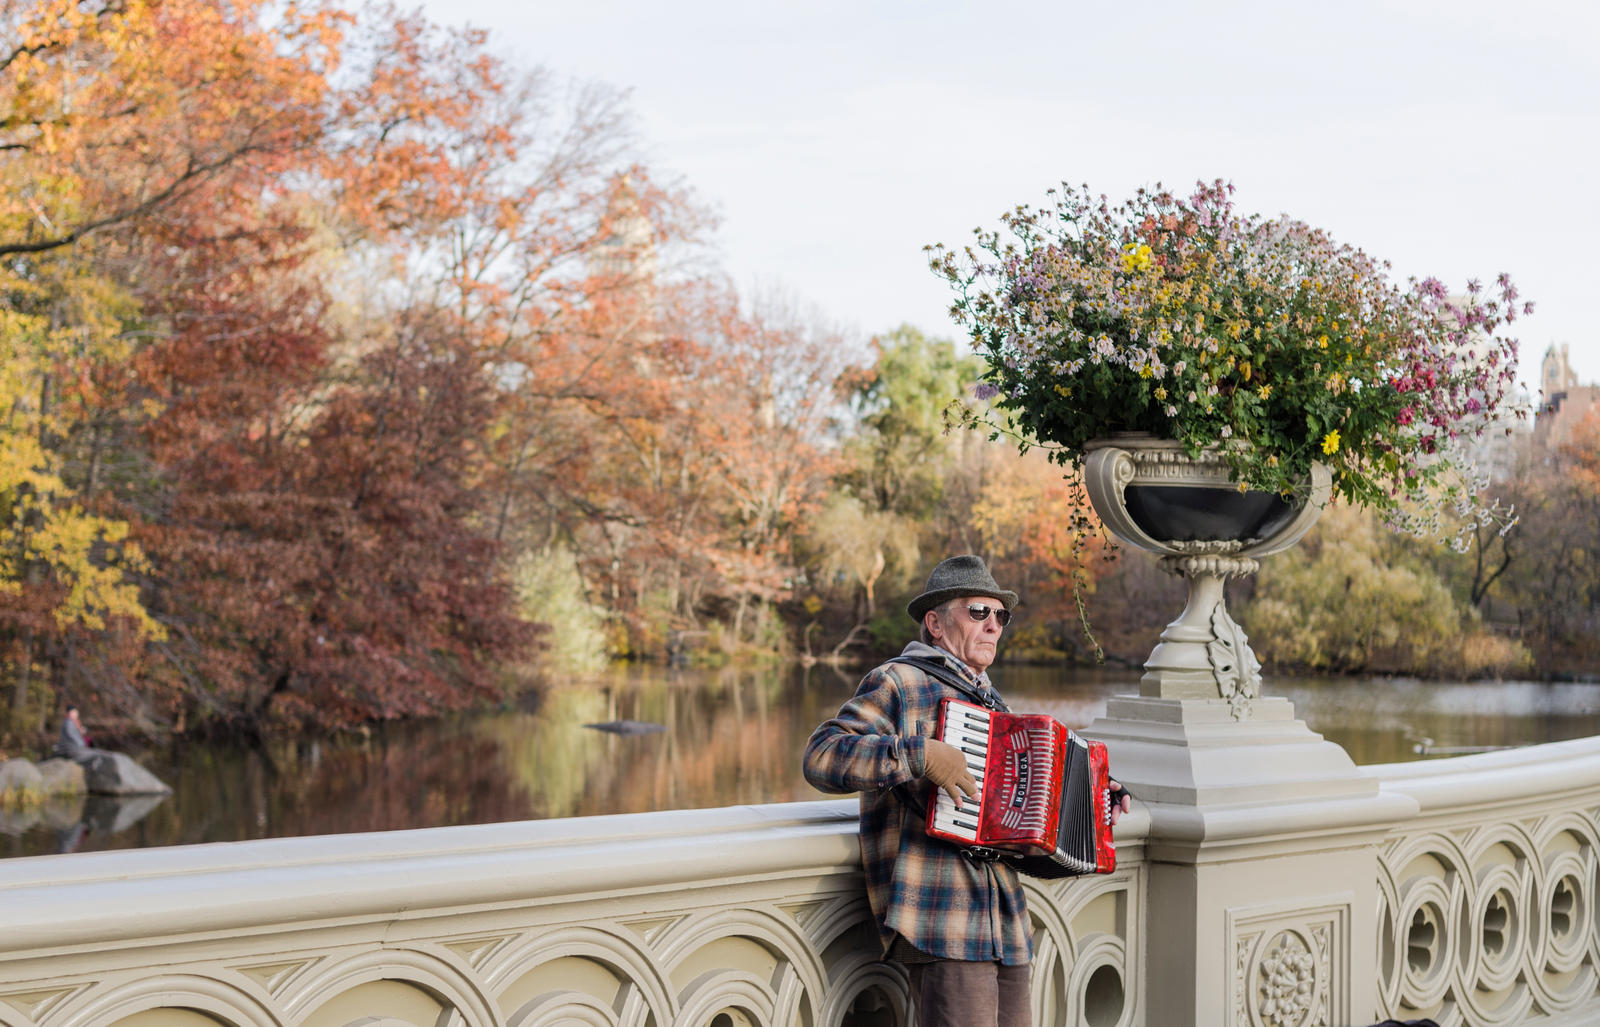 Accordion Player by mnjul